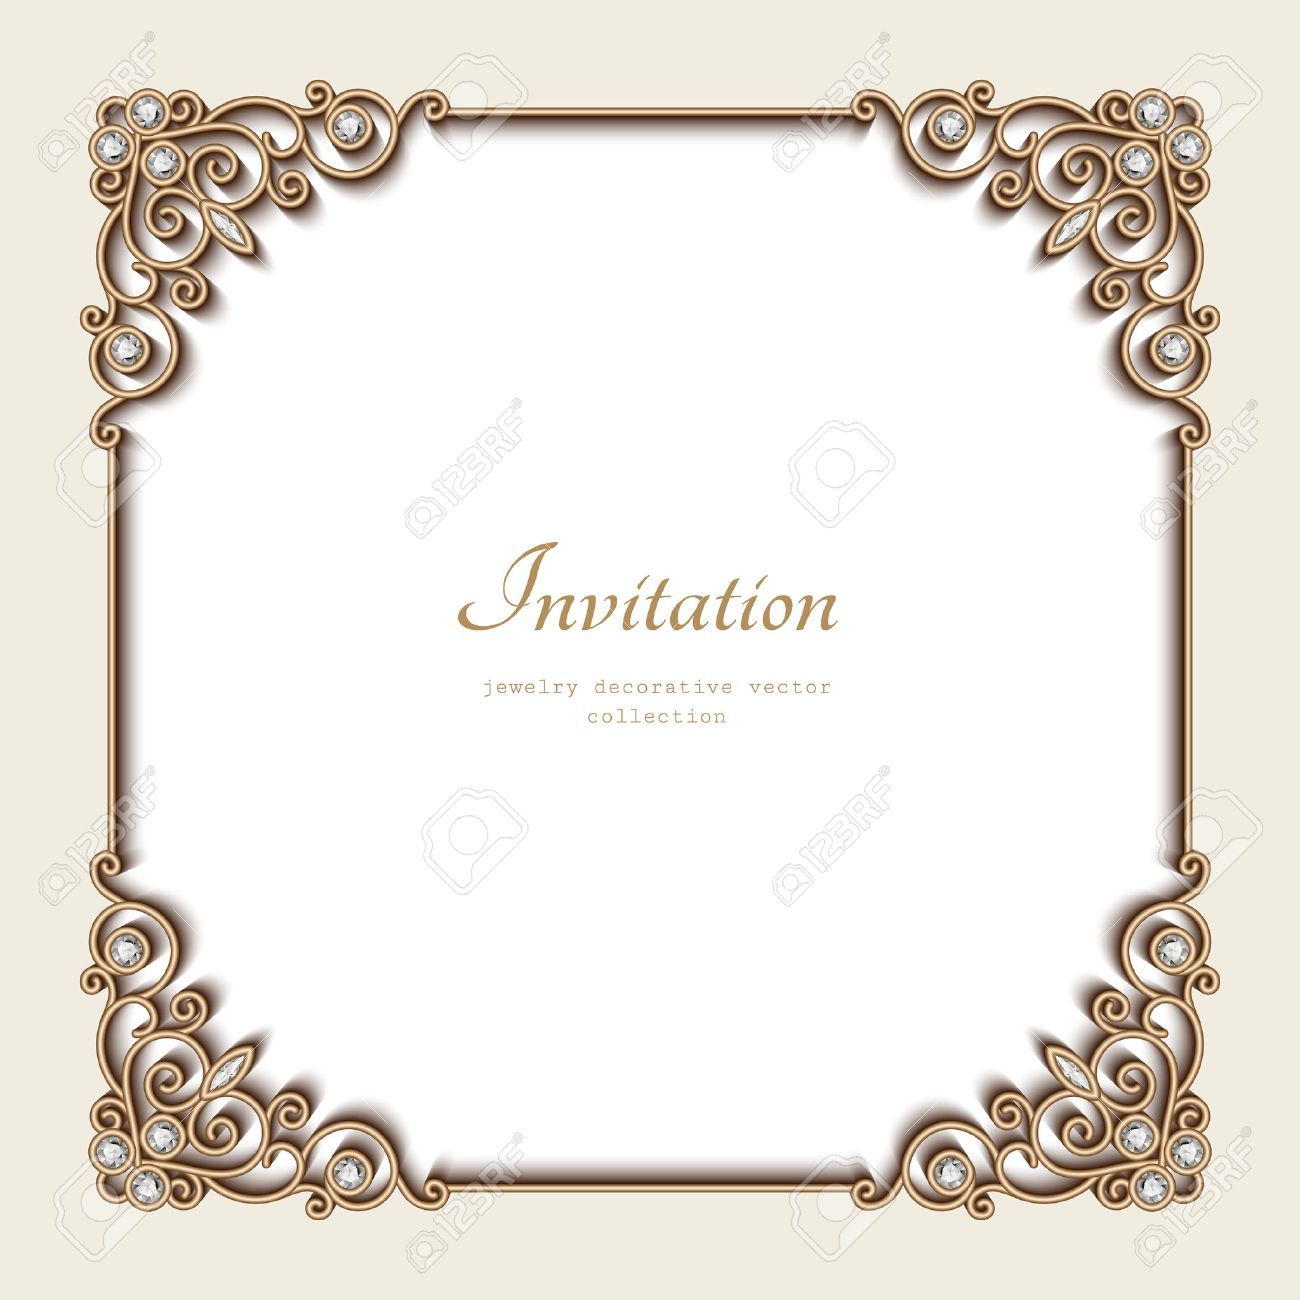 vector vintage gold background elegant square frame invitation template antique jewelry vignette